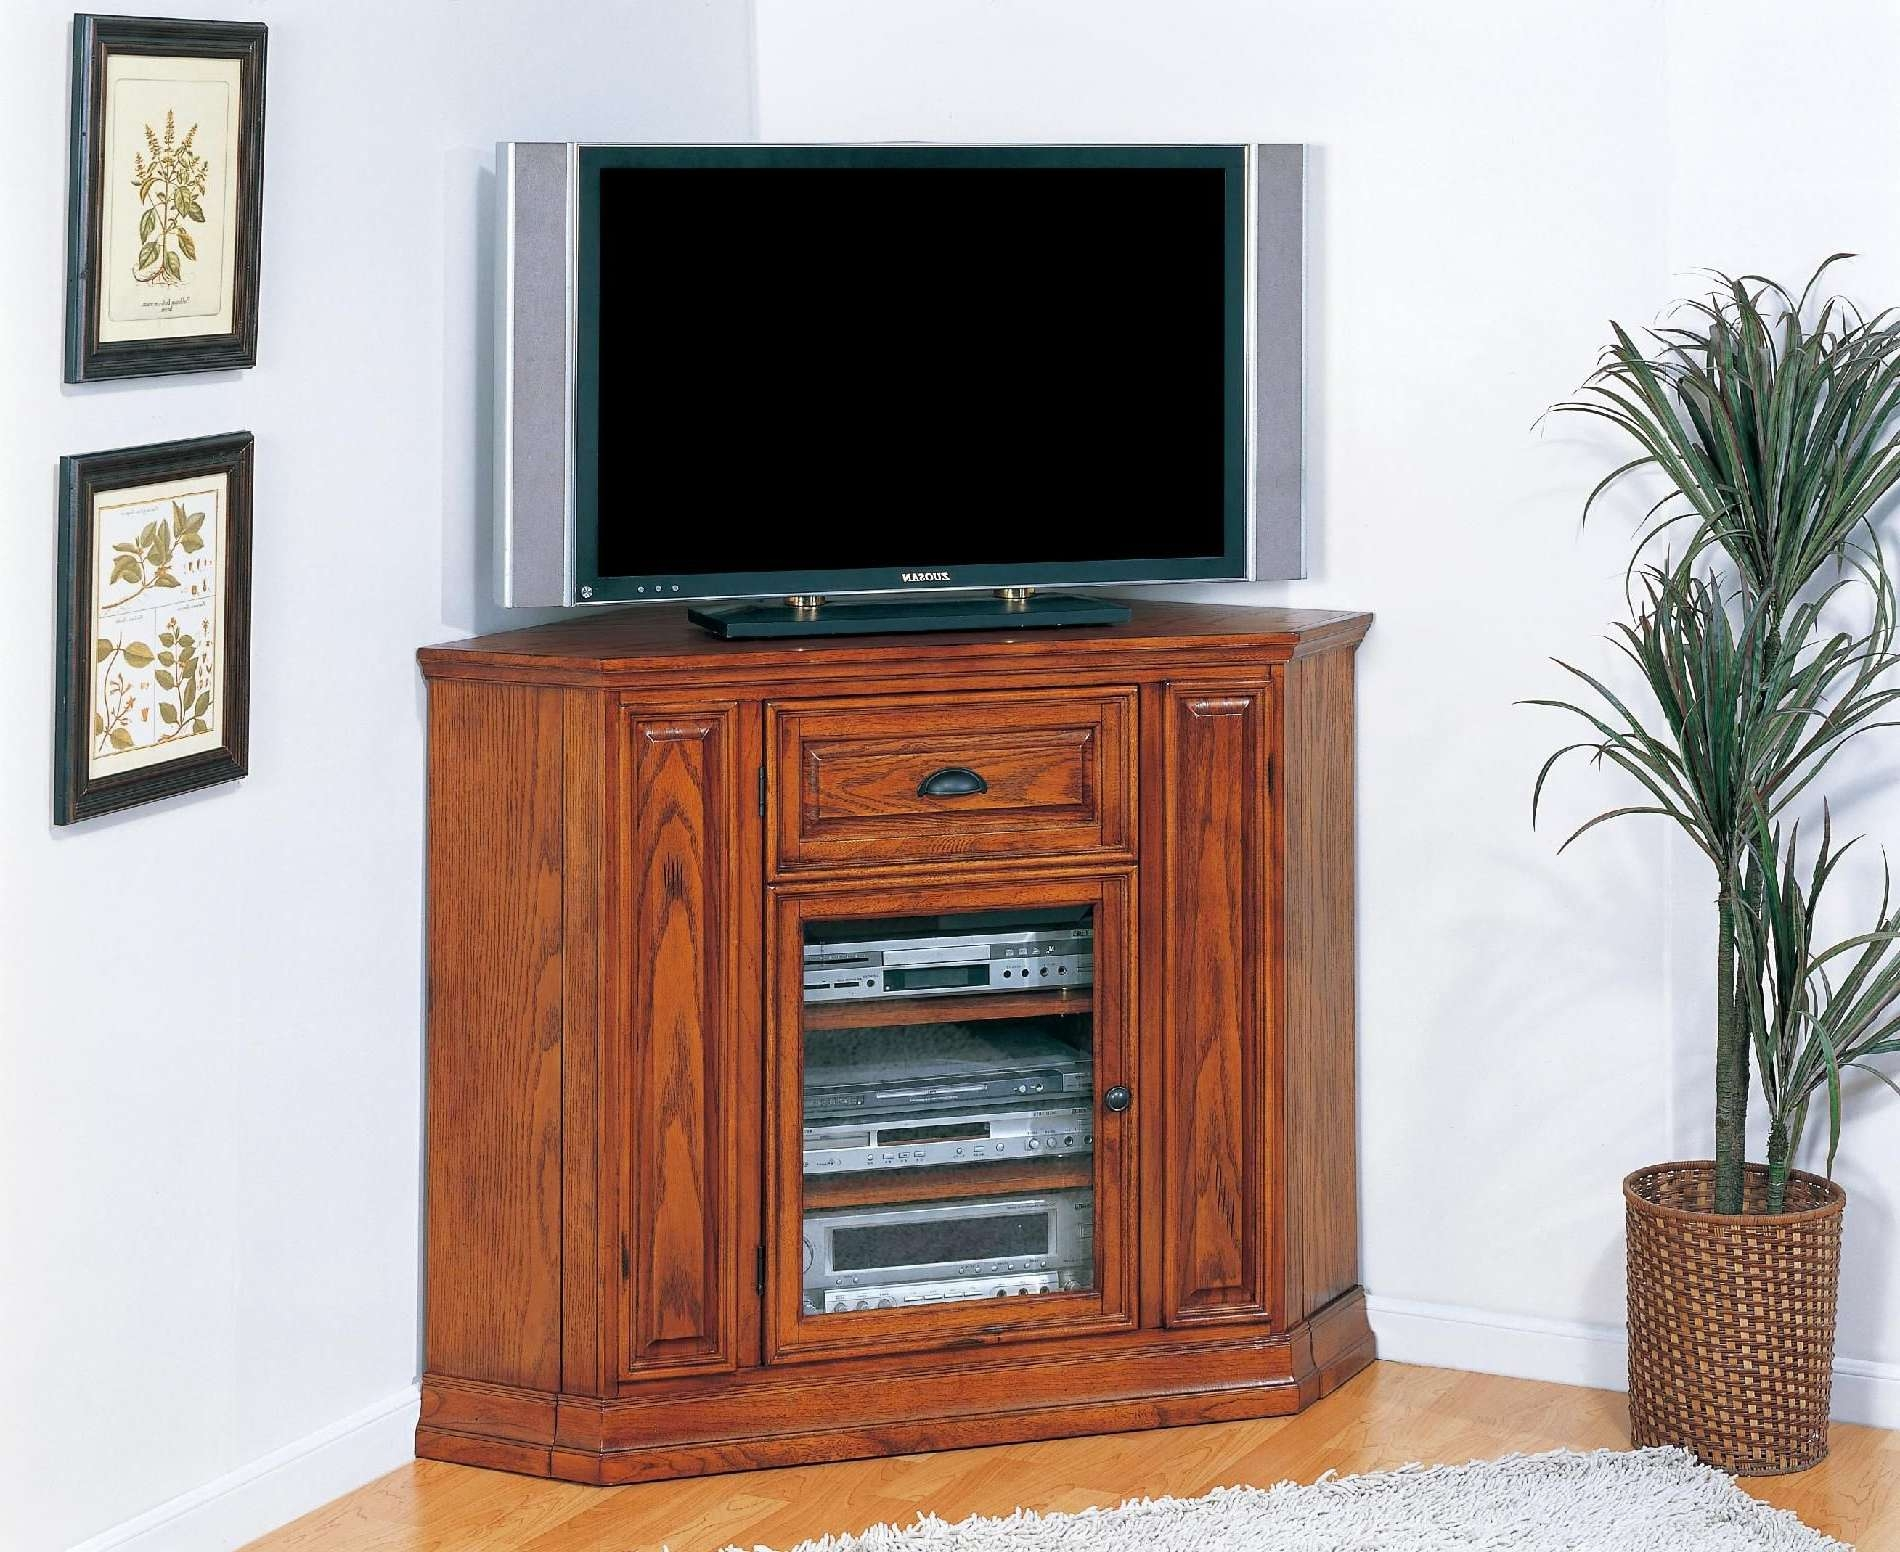 Tall Corner Tv Cabinets For Flat Screens • Corner Cabinets Throughout Corner Tv Cabinets For Flat Screens With Doors (View 14 of 20)